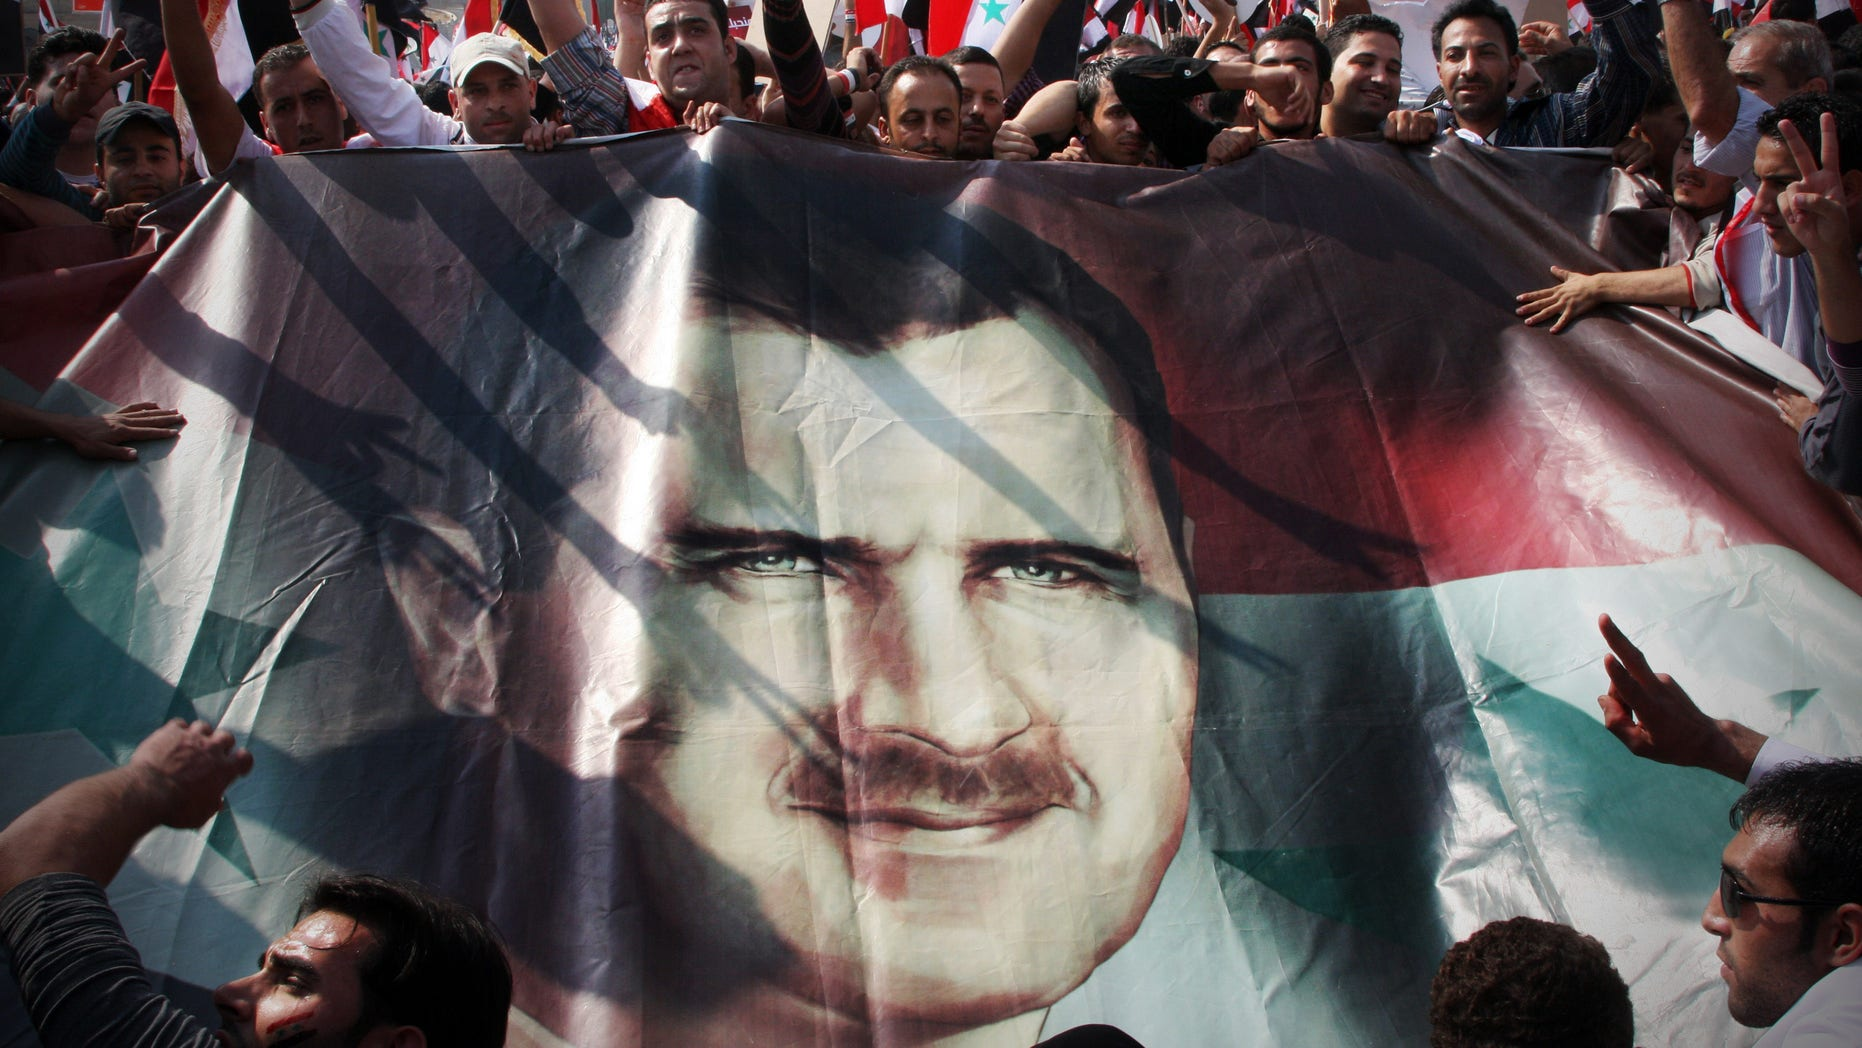 Oct. 26, 2011: Syrian regime supporters flash the V-victory sign as they hold up a portrait of Syrian President Bashar Assad during a rally at Umayyad Square in Damascus, Syria.